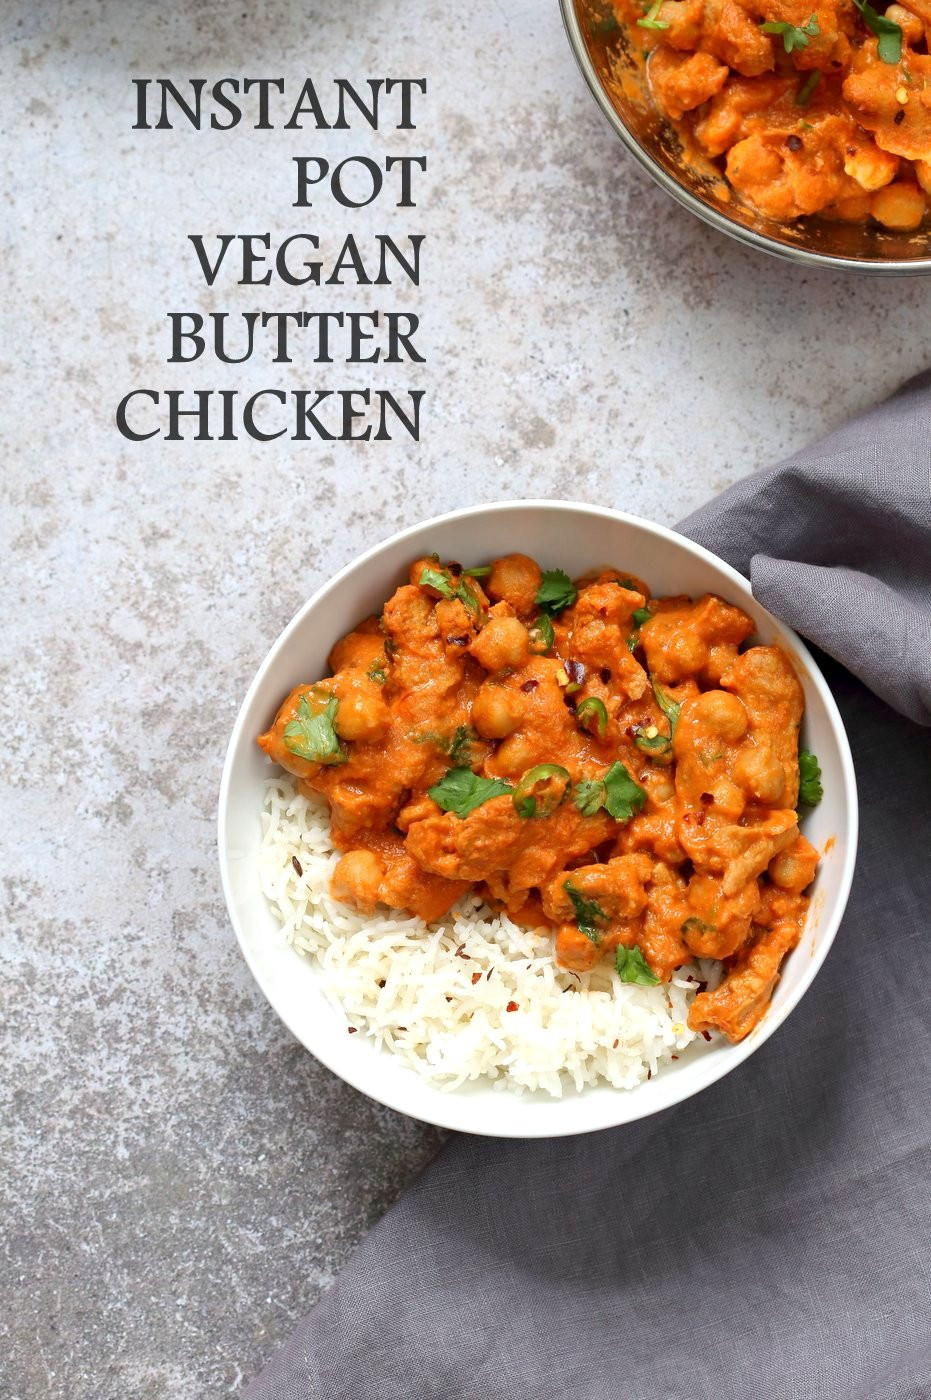 Vegetarian Instant Pot Recipes  Instant Pot Vegan Butter Chicken with Soy Curls